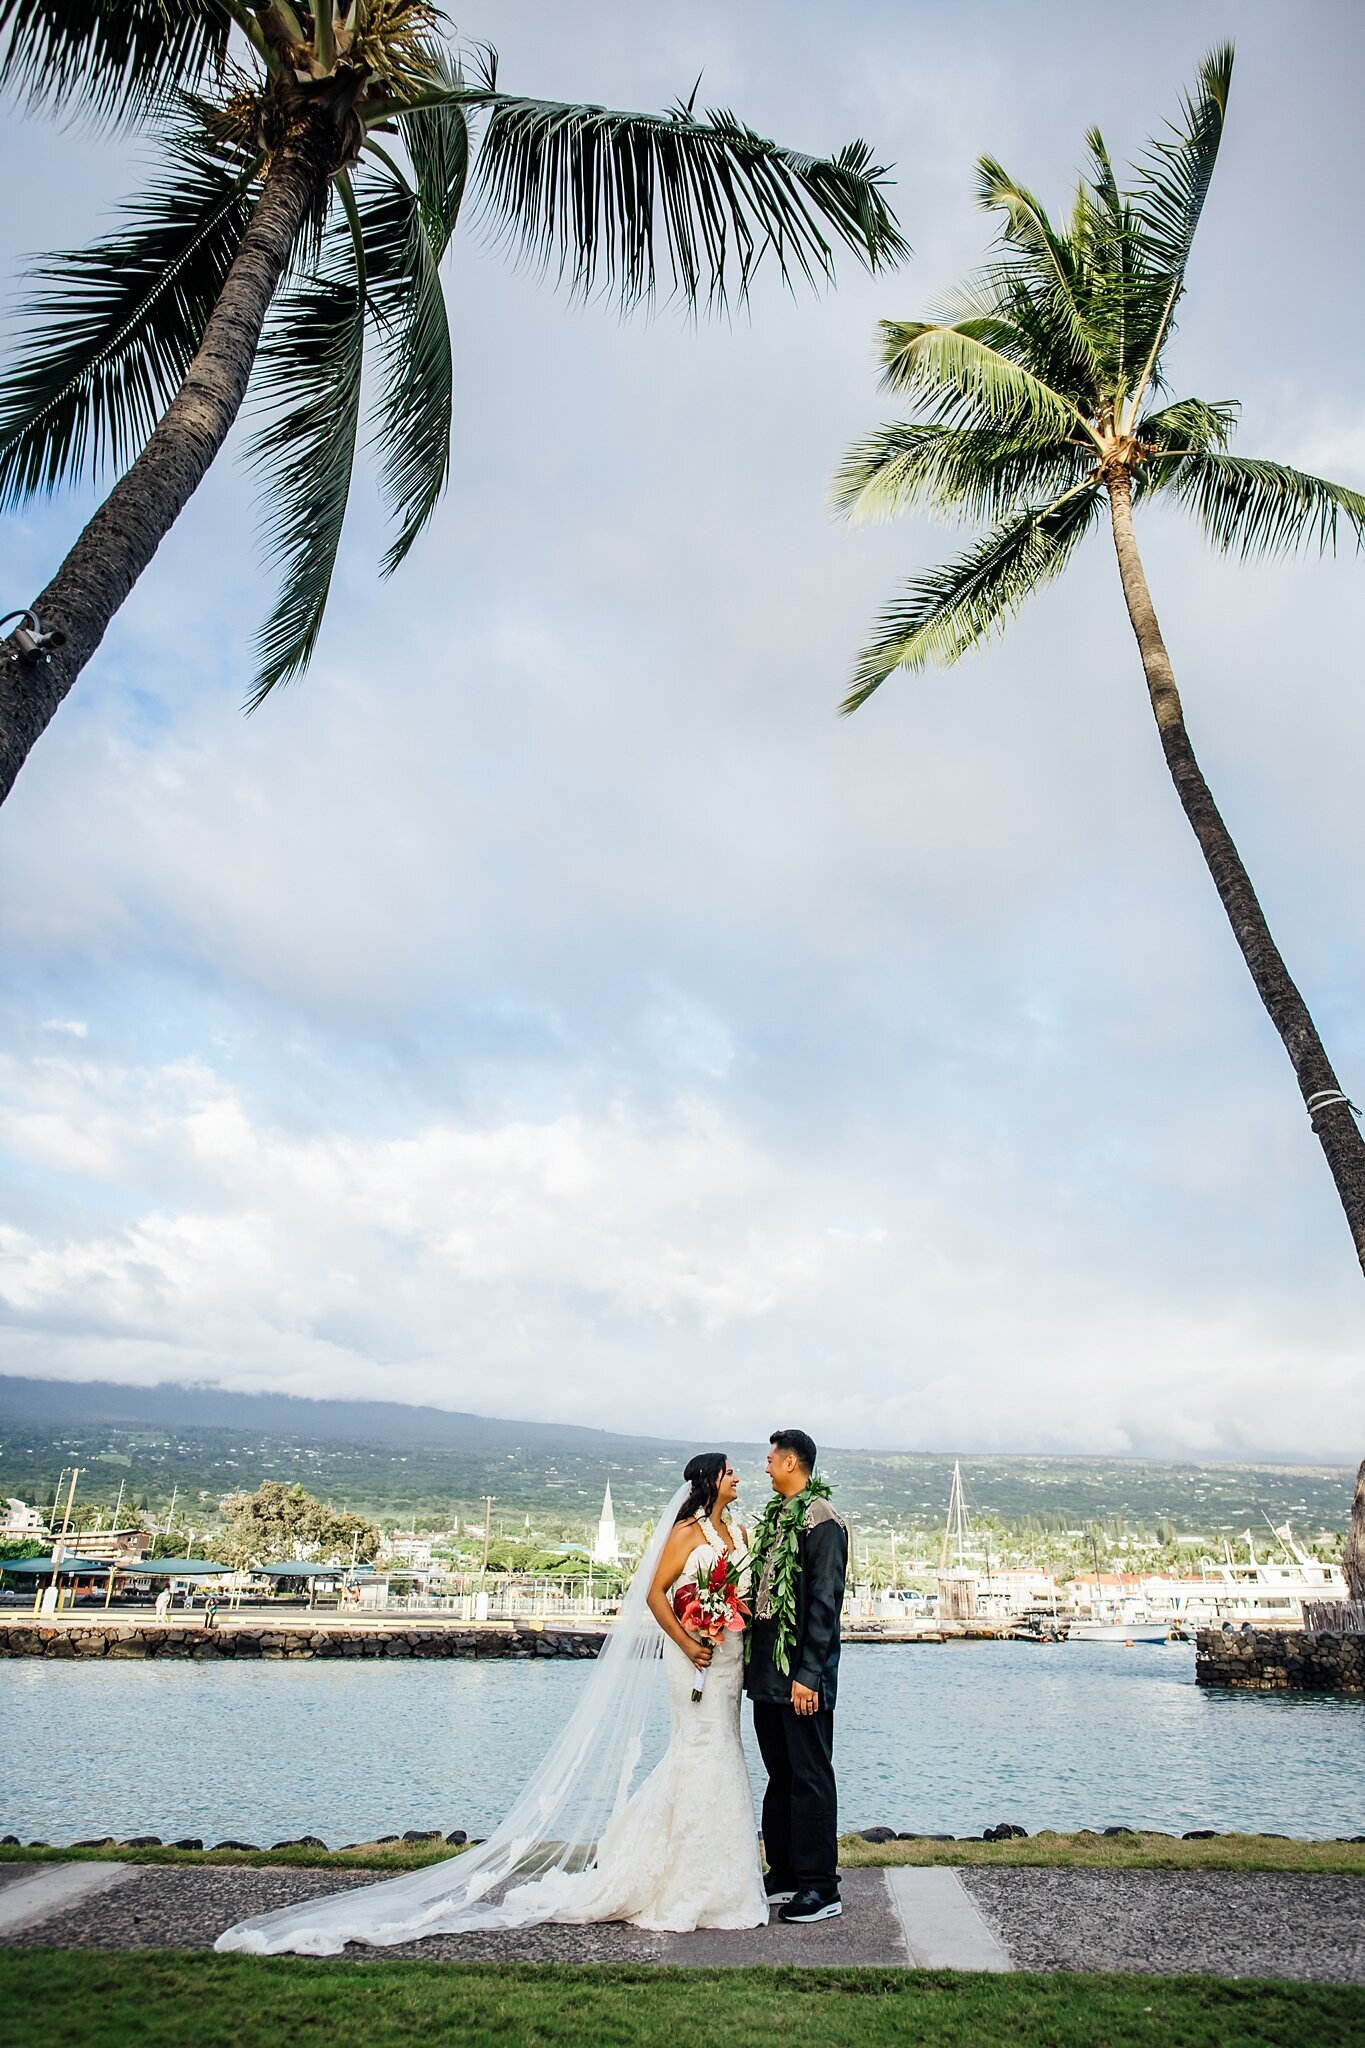 kona pier on background of this wedding